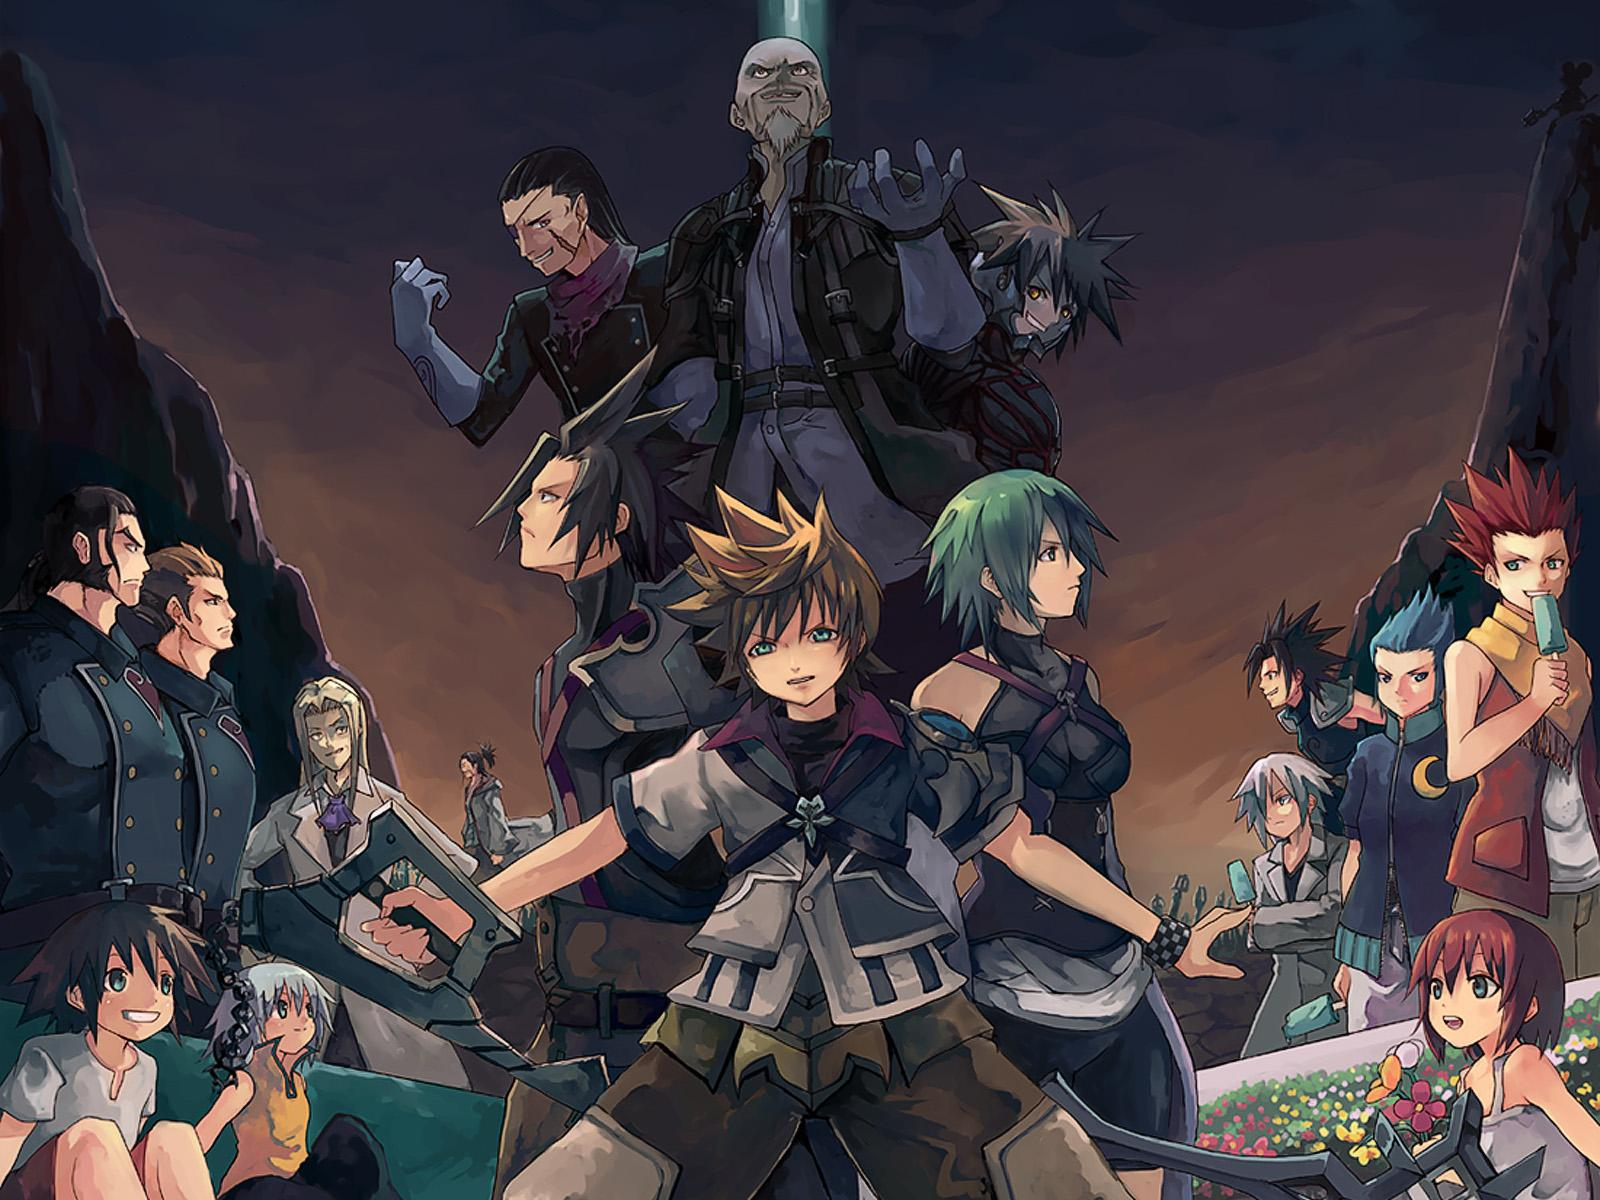 Kingdom Hearts Wallpapers For Android - Kingdom Hearts Wallpaper Anime , HD Wallpaper & Backgrounds